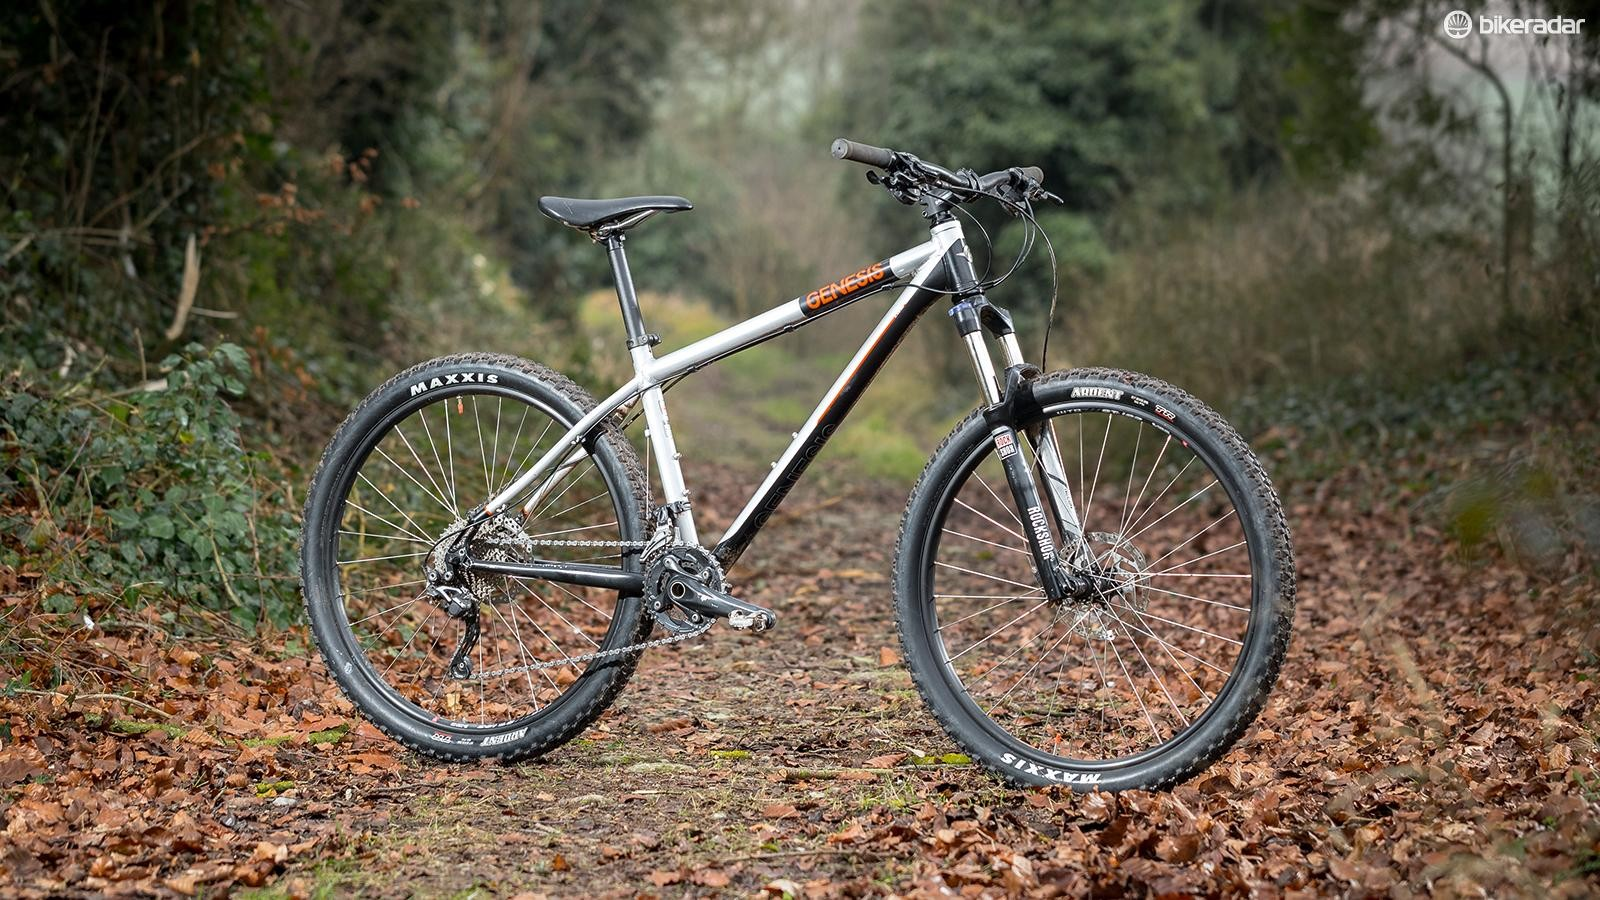 The Genesis Core 30 hardtail